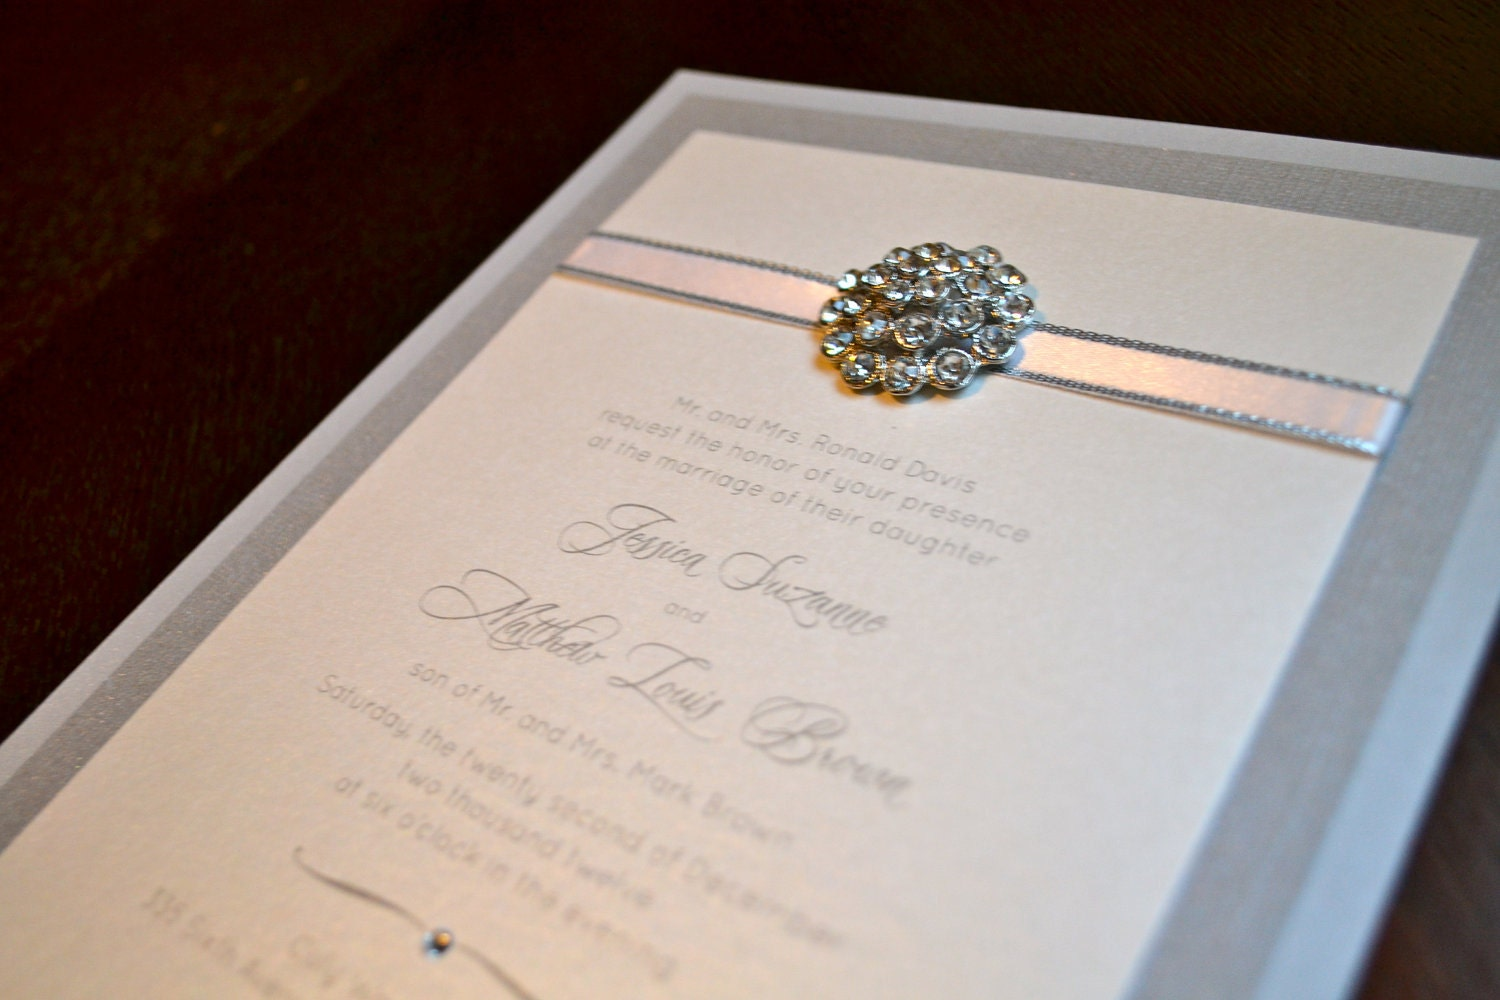 Silver Wedding Invitations: Silver And White Rhinestone Wedding Invitation By Nladegaard